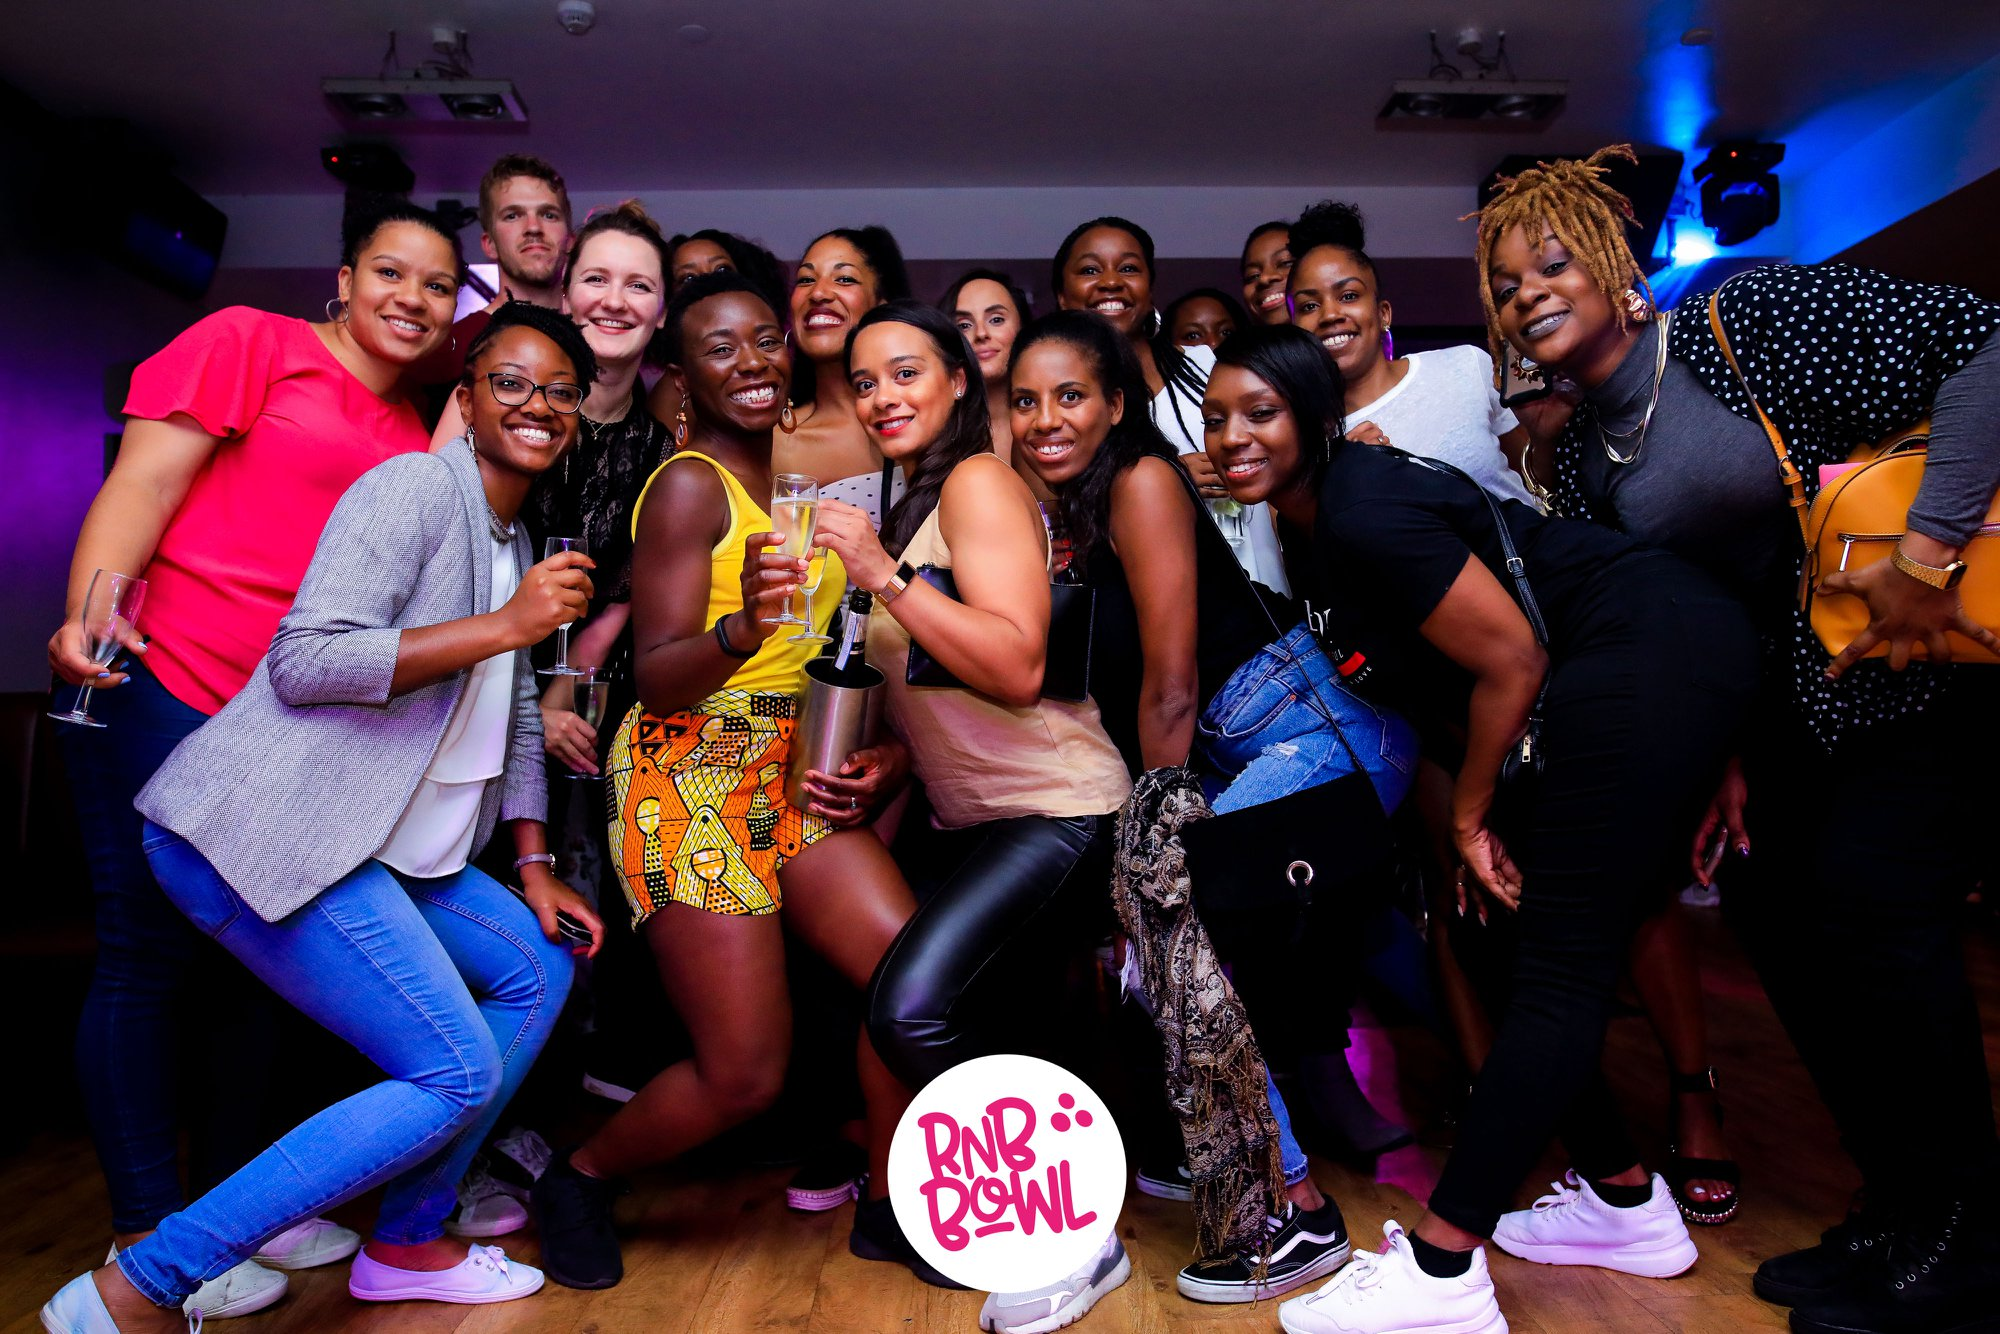 RnB Bowl - London's No.1 RnB Party!